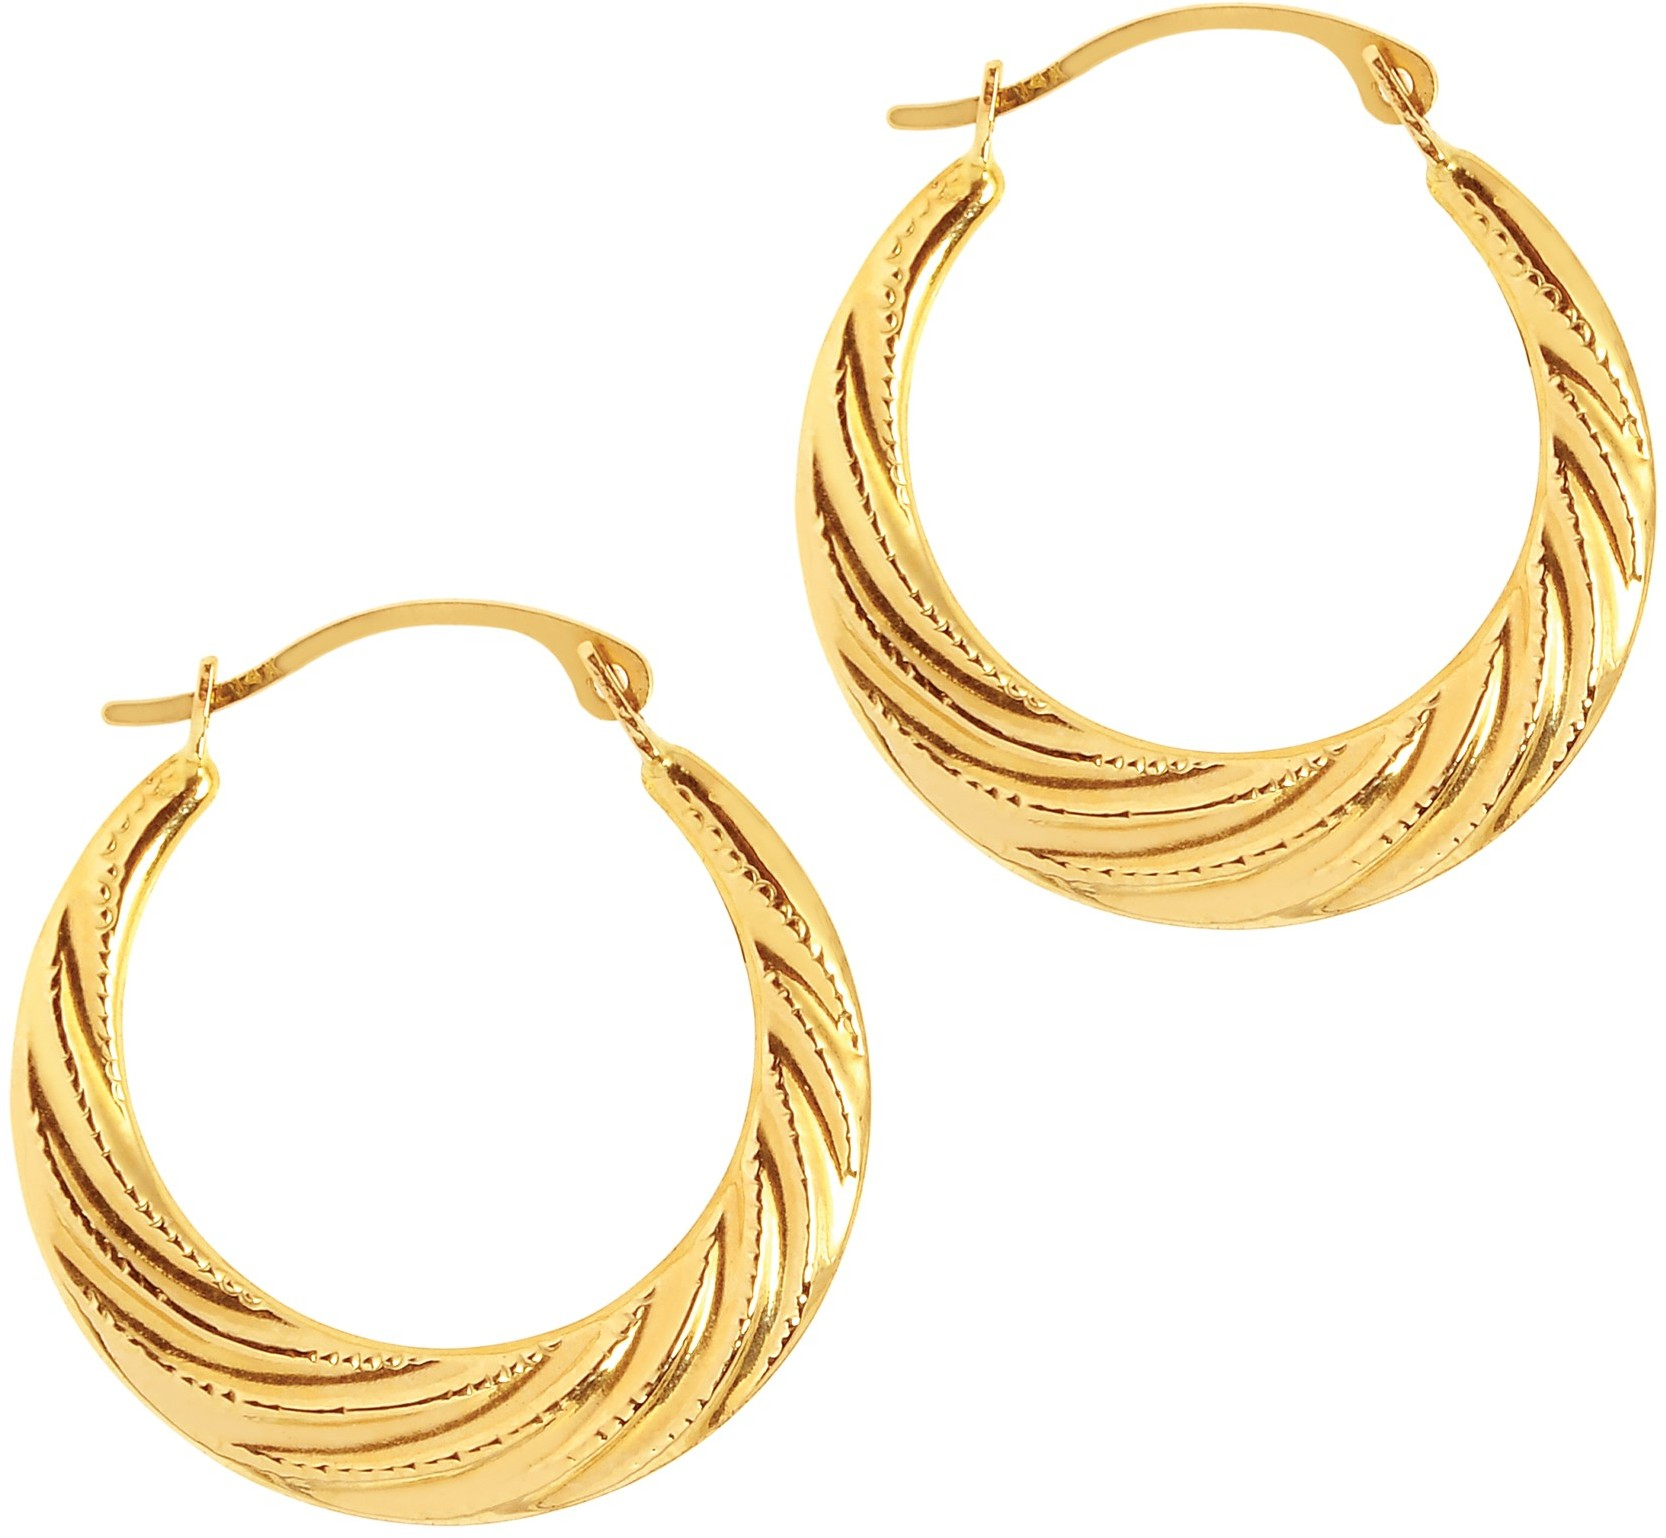 14K Yellow Gold Polished Textured Graduated Twisted Round Hoop Earrings